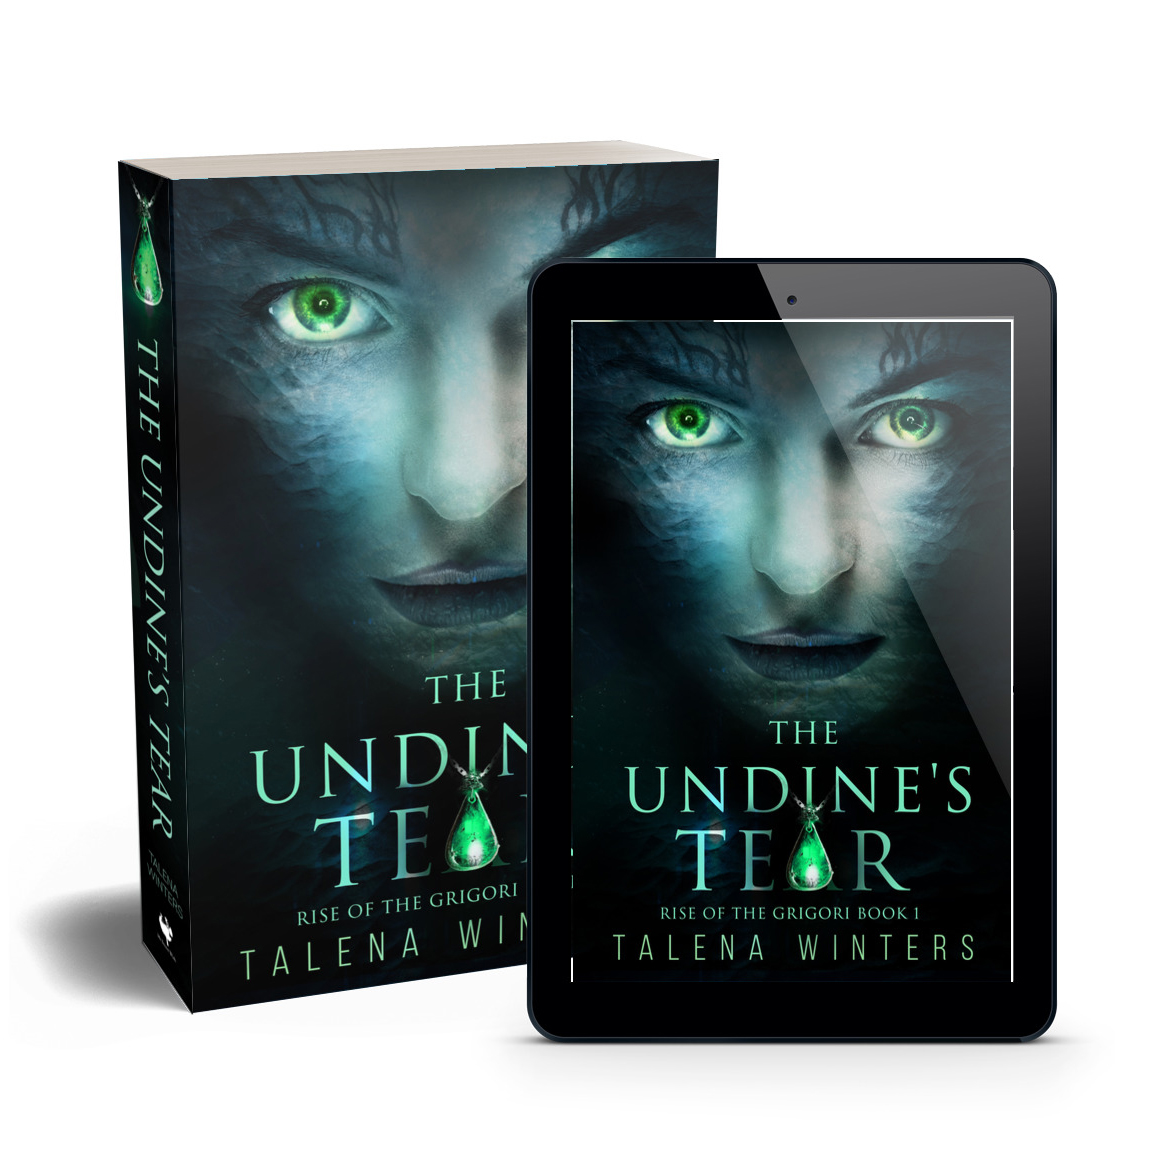 The Undine's Tear   by Talena Winters. She was raised to save her people—as long as she doesn't go crazy and kill them all first.